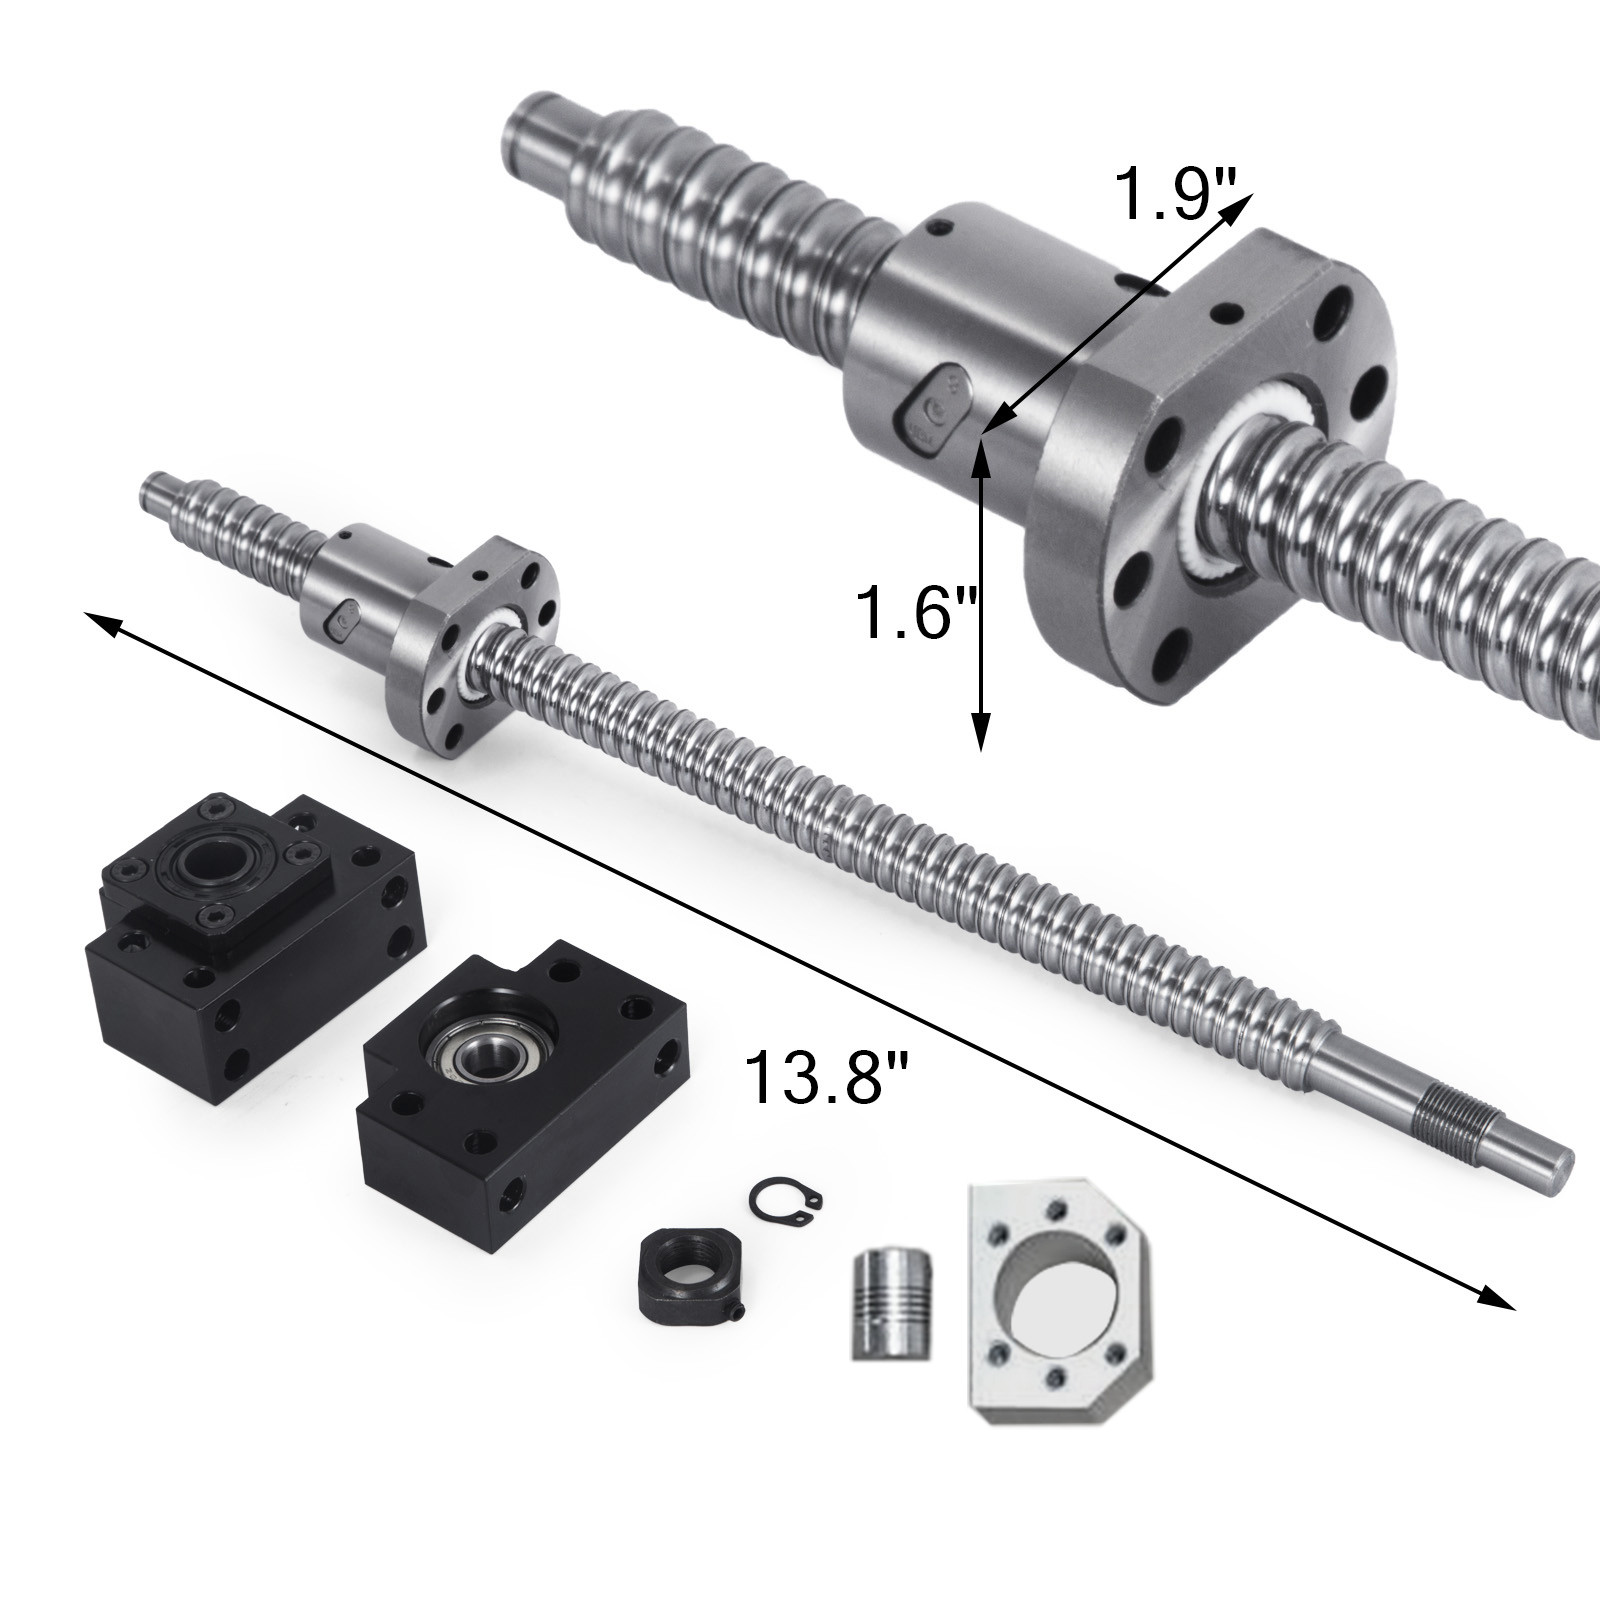 SFU1605-350-1500mm-Rolled-Ball-Screw-With-Ballnut-For-BK-BF12-End-Machined-CNC thumbnail 14